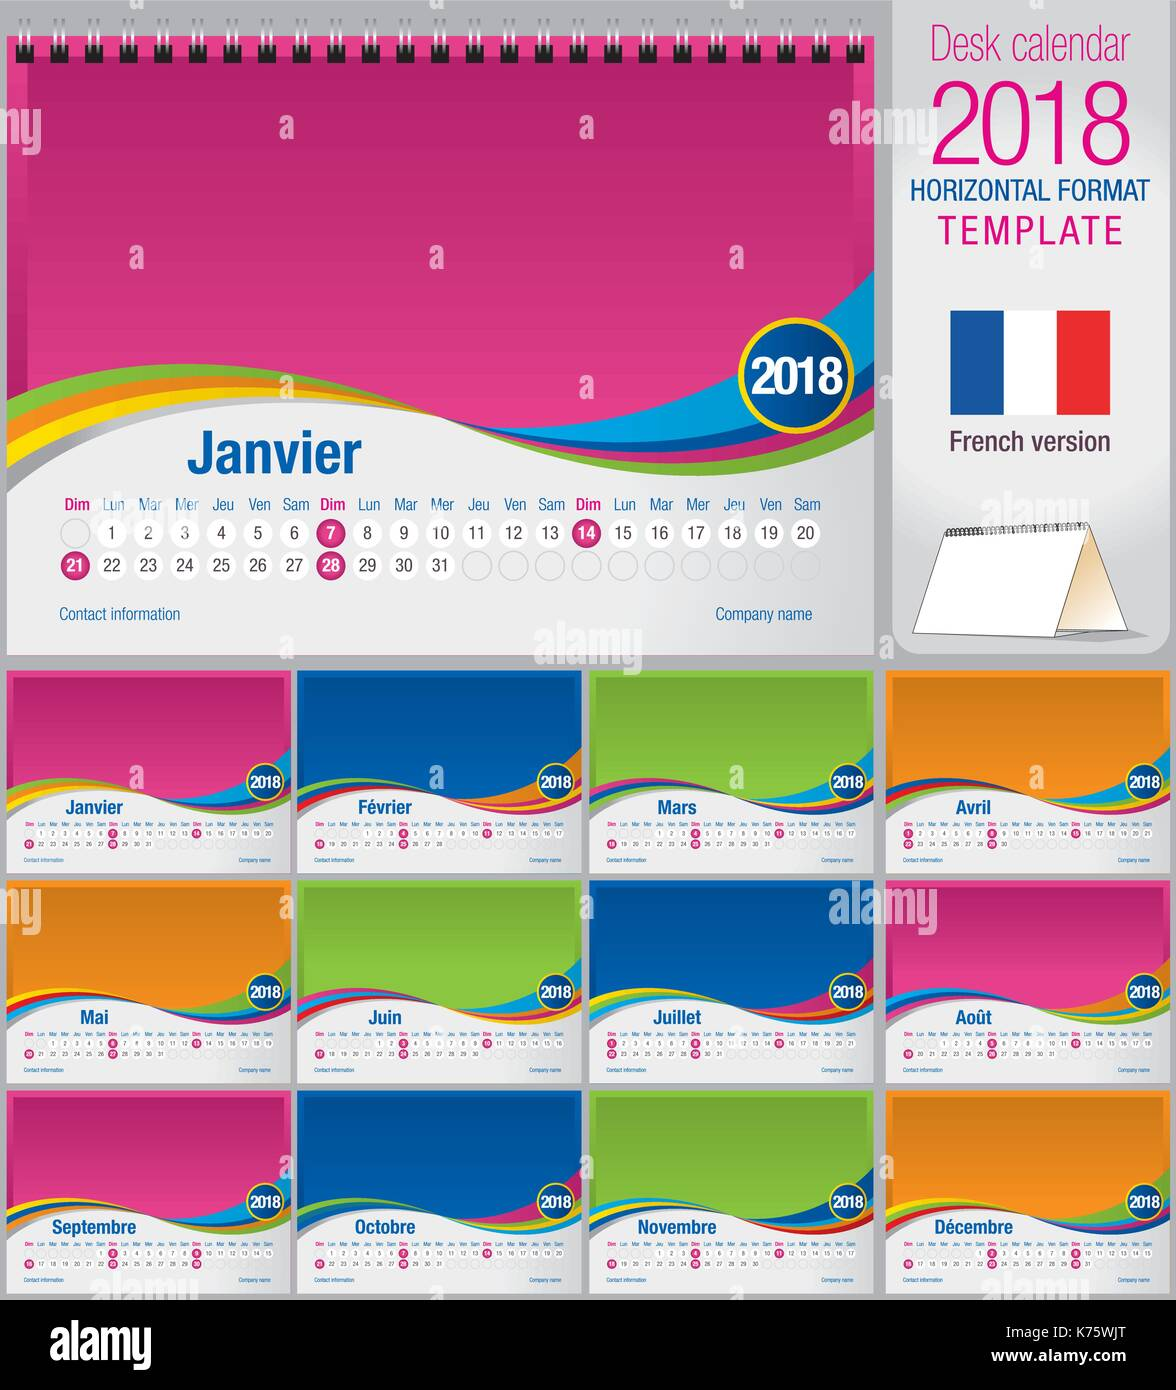 desk triangle calendar 2018 colorful template size 210mm x 150mm format a5 vector image french version